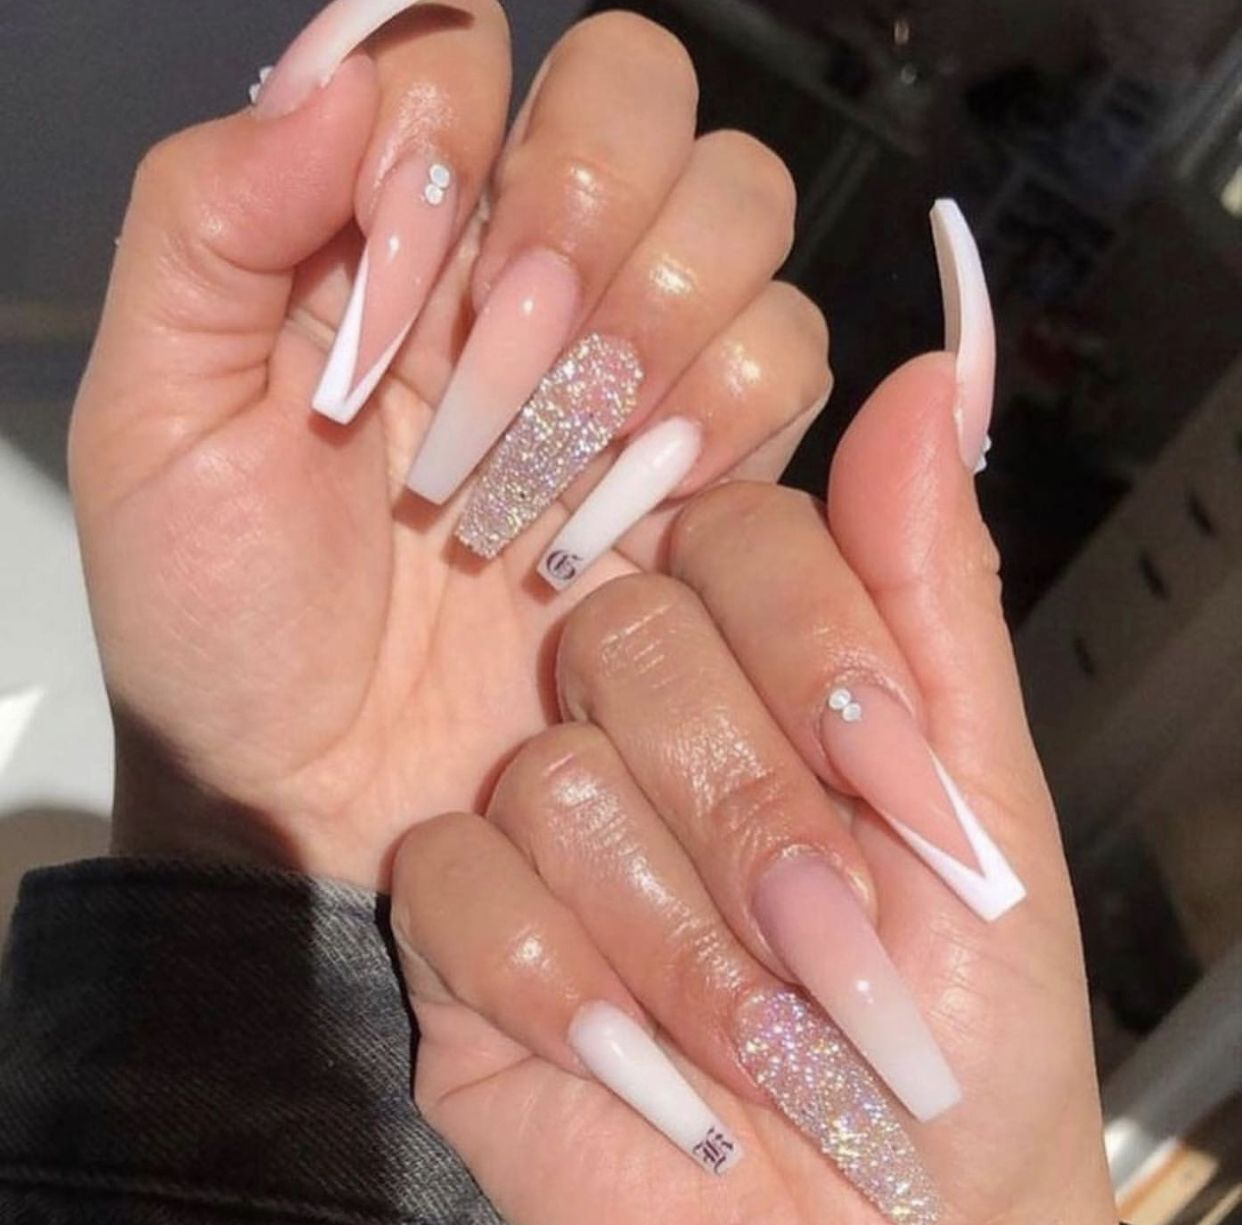 Pin By Alyssandria Jay On Claws In 2020 Long Acrylic Nails Coffin Bling Acrylic Nails White Acrylic Nails